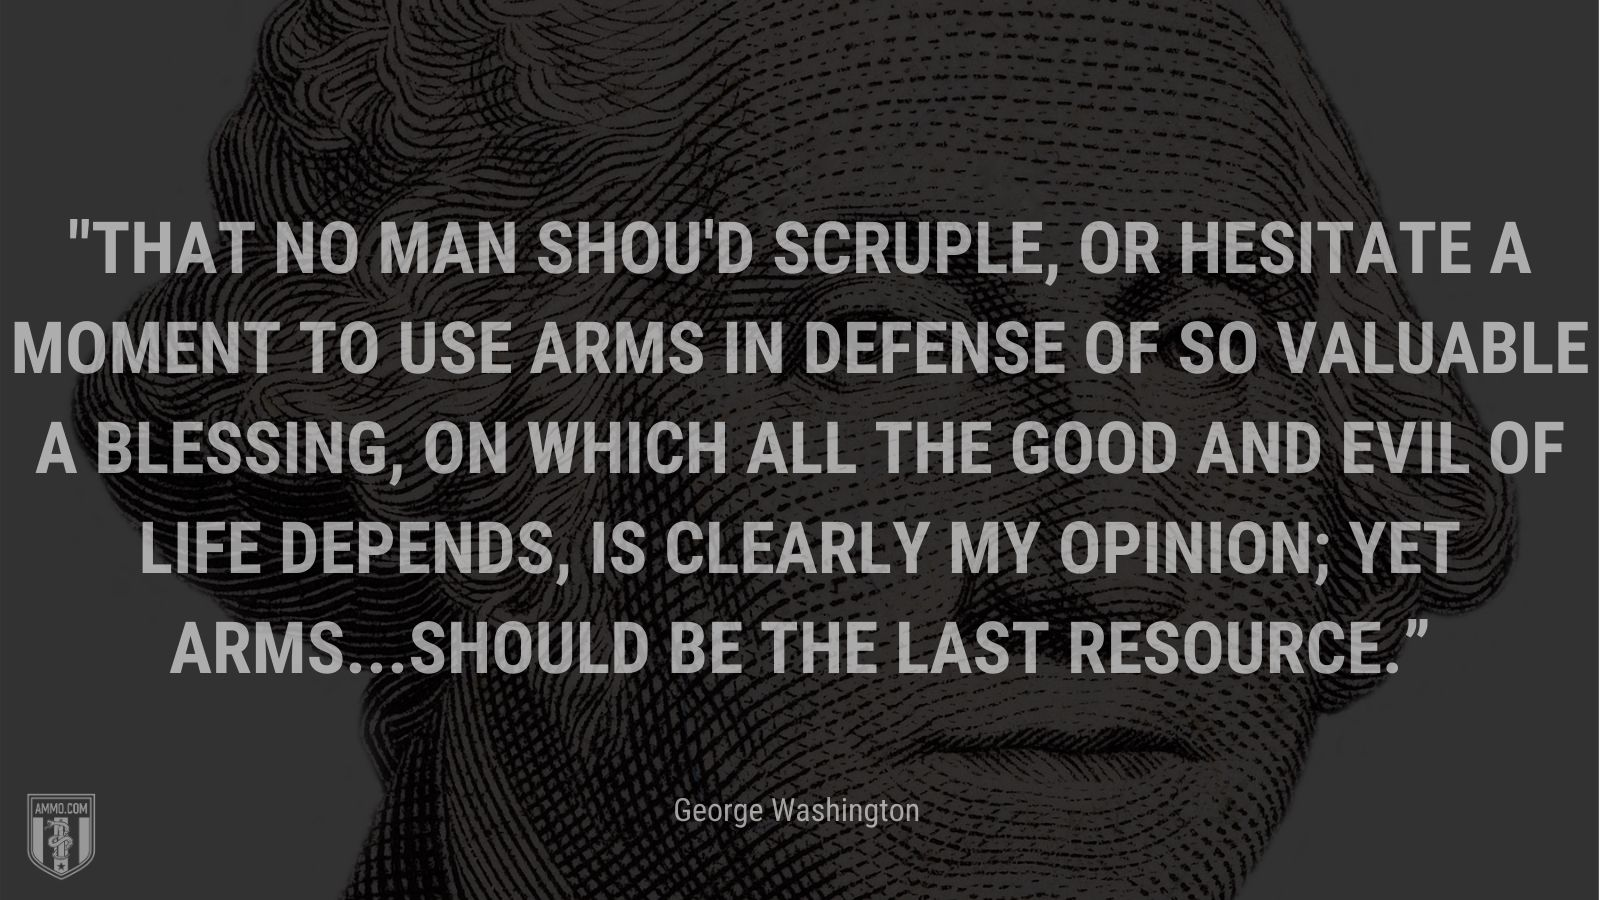 """""""That no man shou'd scruple, or hesitate a moment to use arms in defense of so valuable a blessing, on which all the good and evil of life depends, is clearly my opinion; yet arms...should be the last resource."""" - George Washington"""